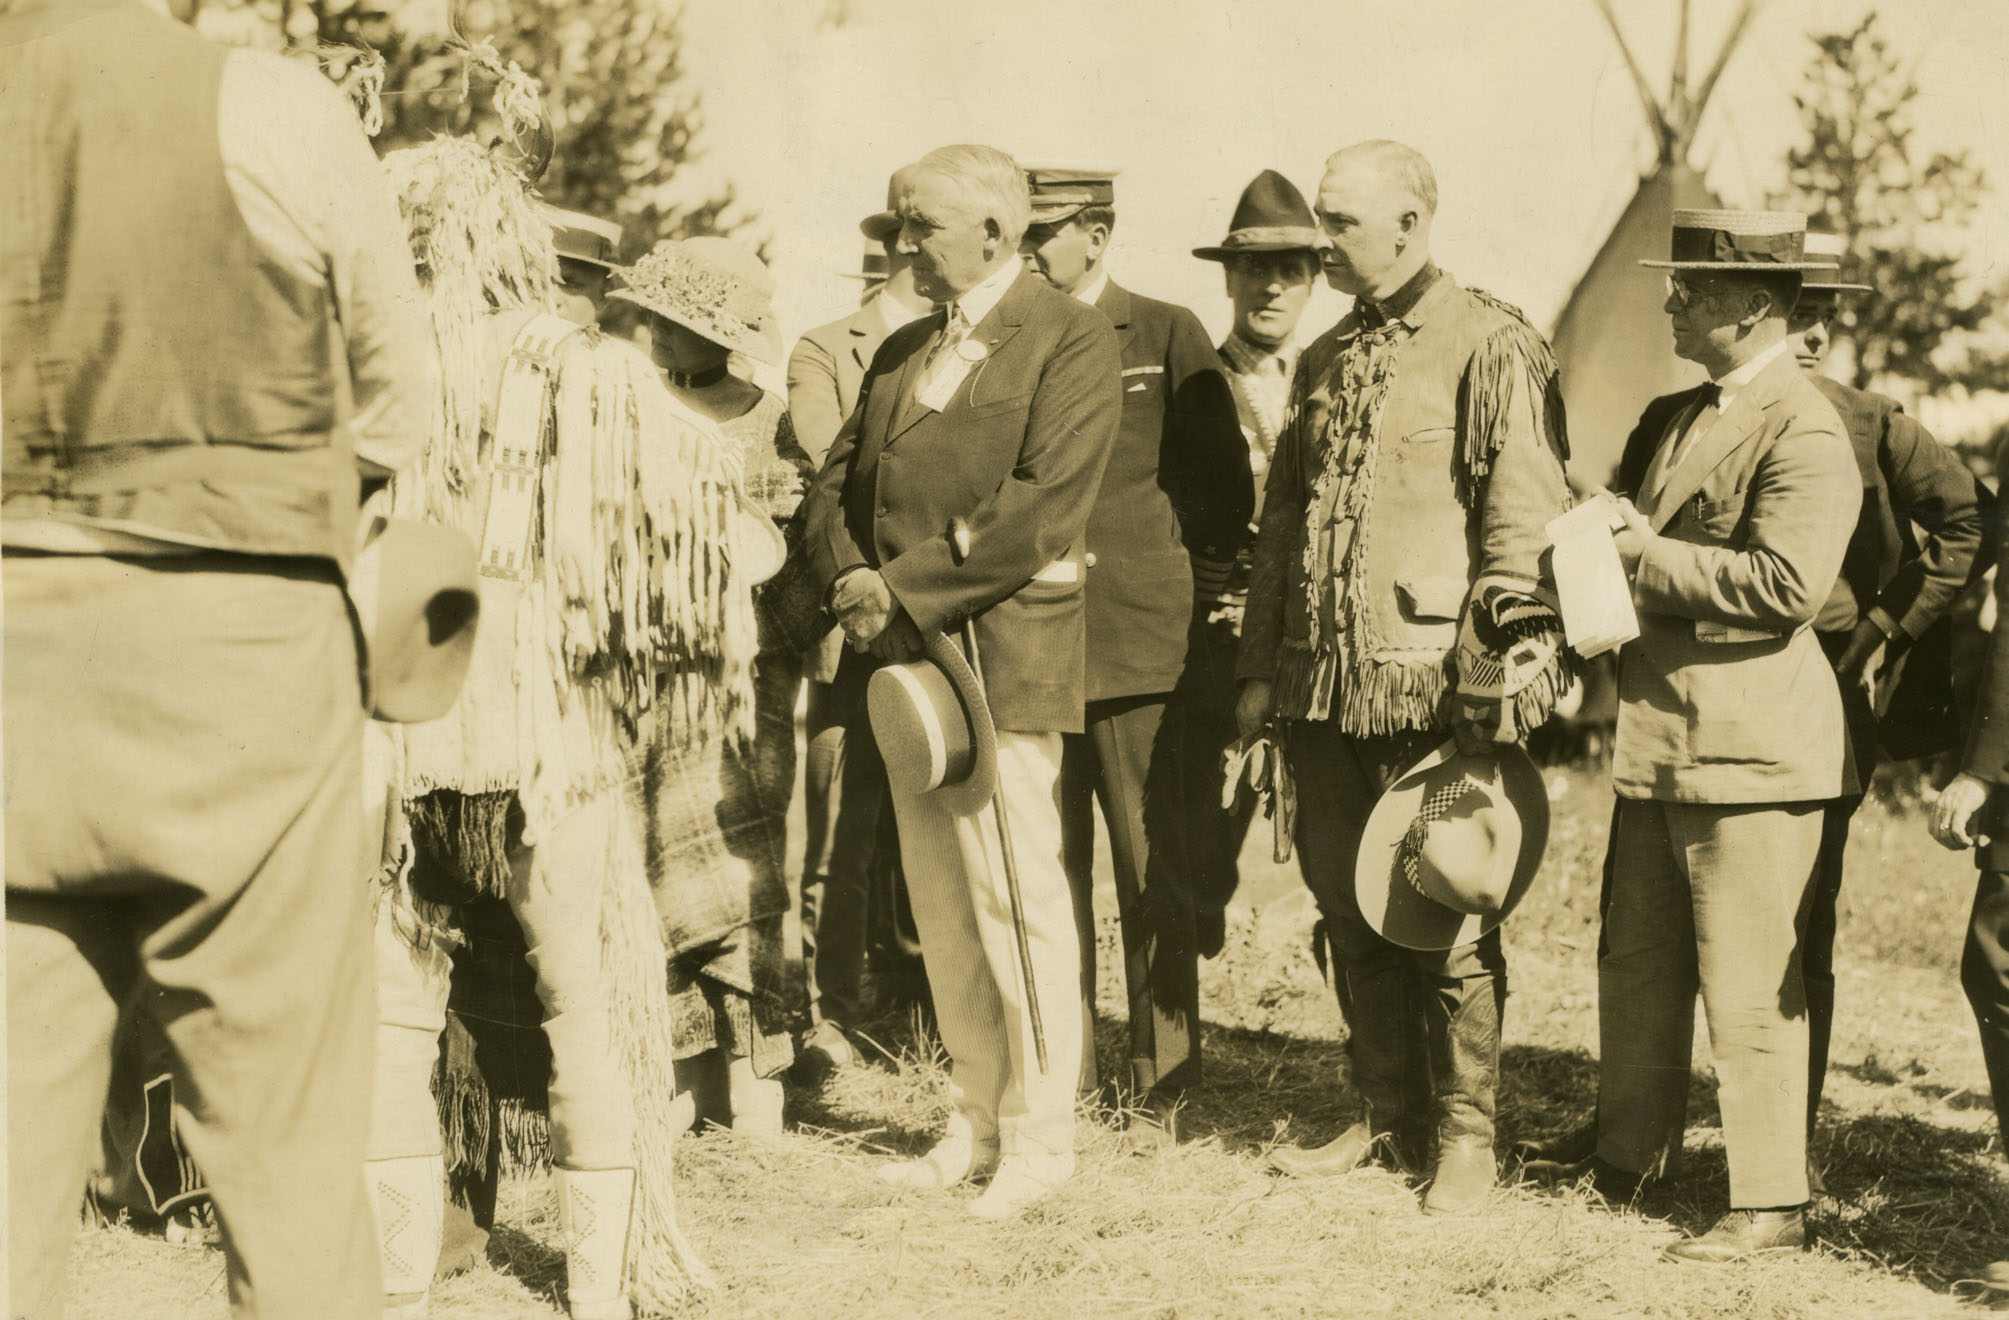 President and First Lady Harding receive a Harding patterned throw from local tribal dignitaries in Oregon.